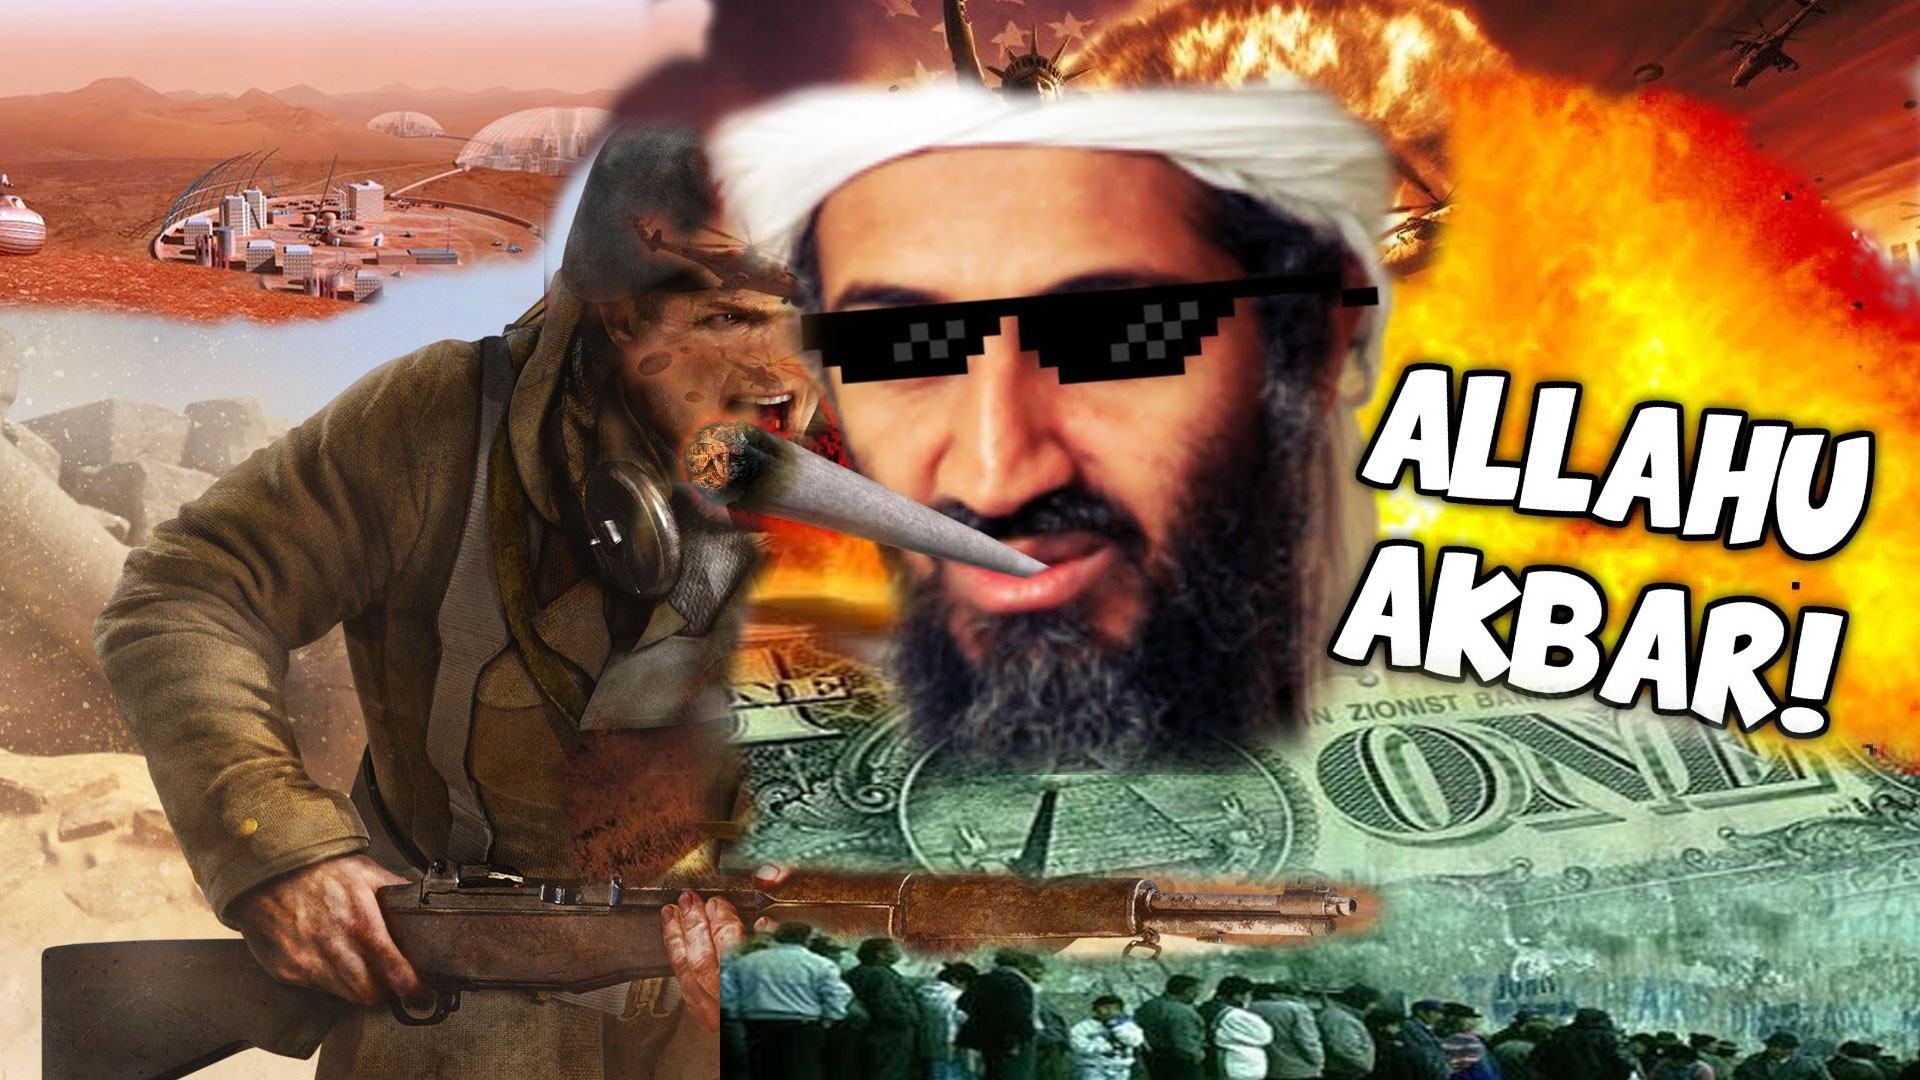 'Allahu Akbar' Fails to Sell New Campaign